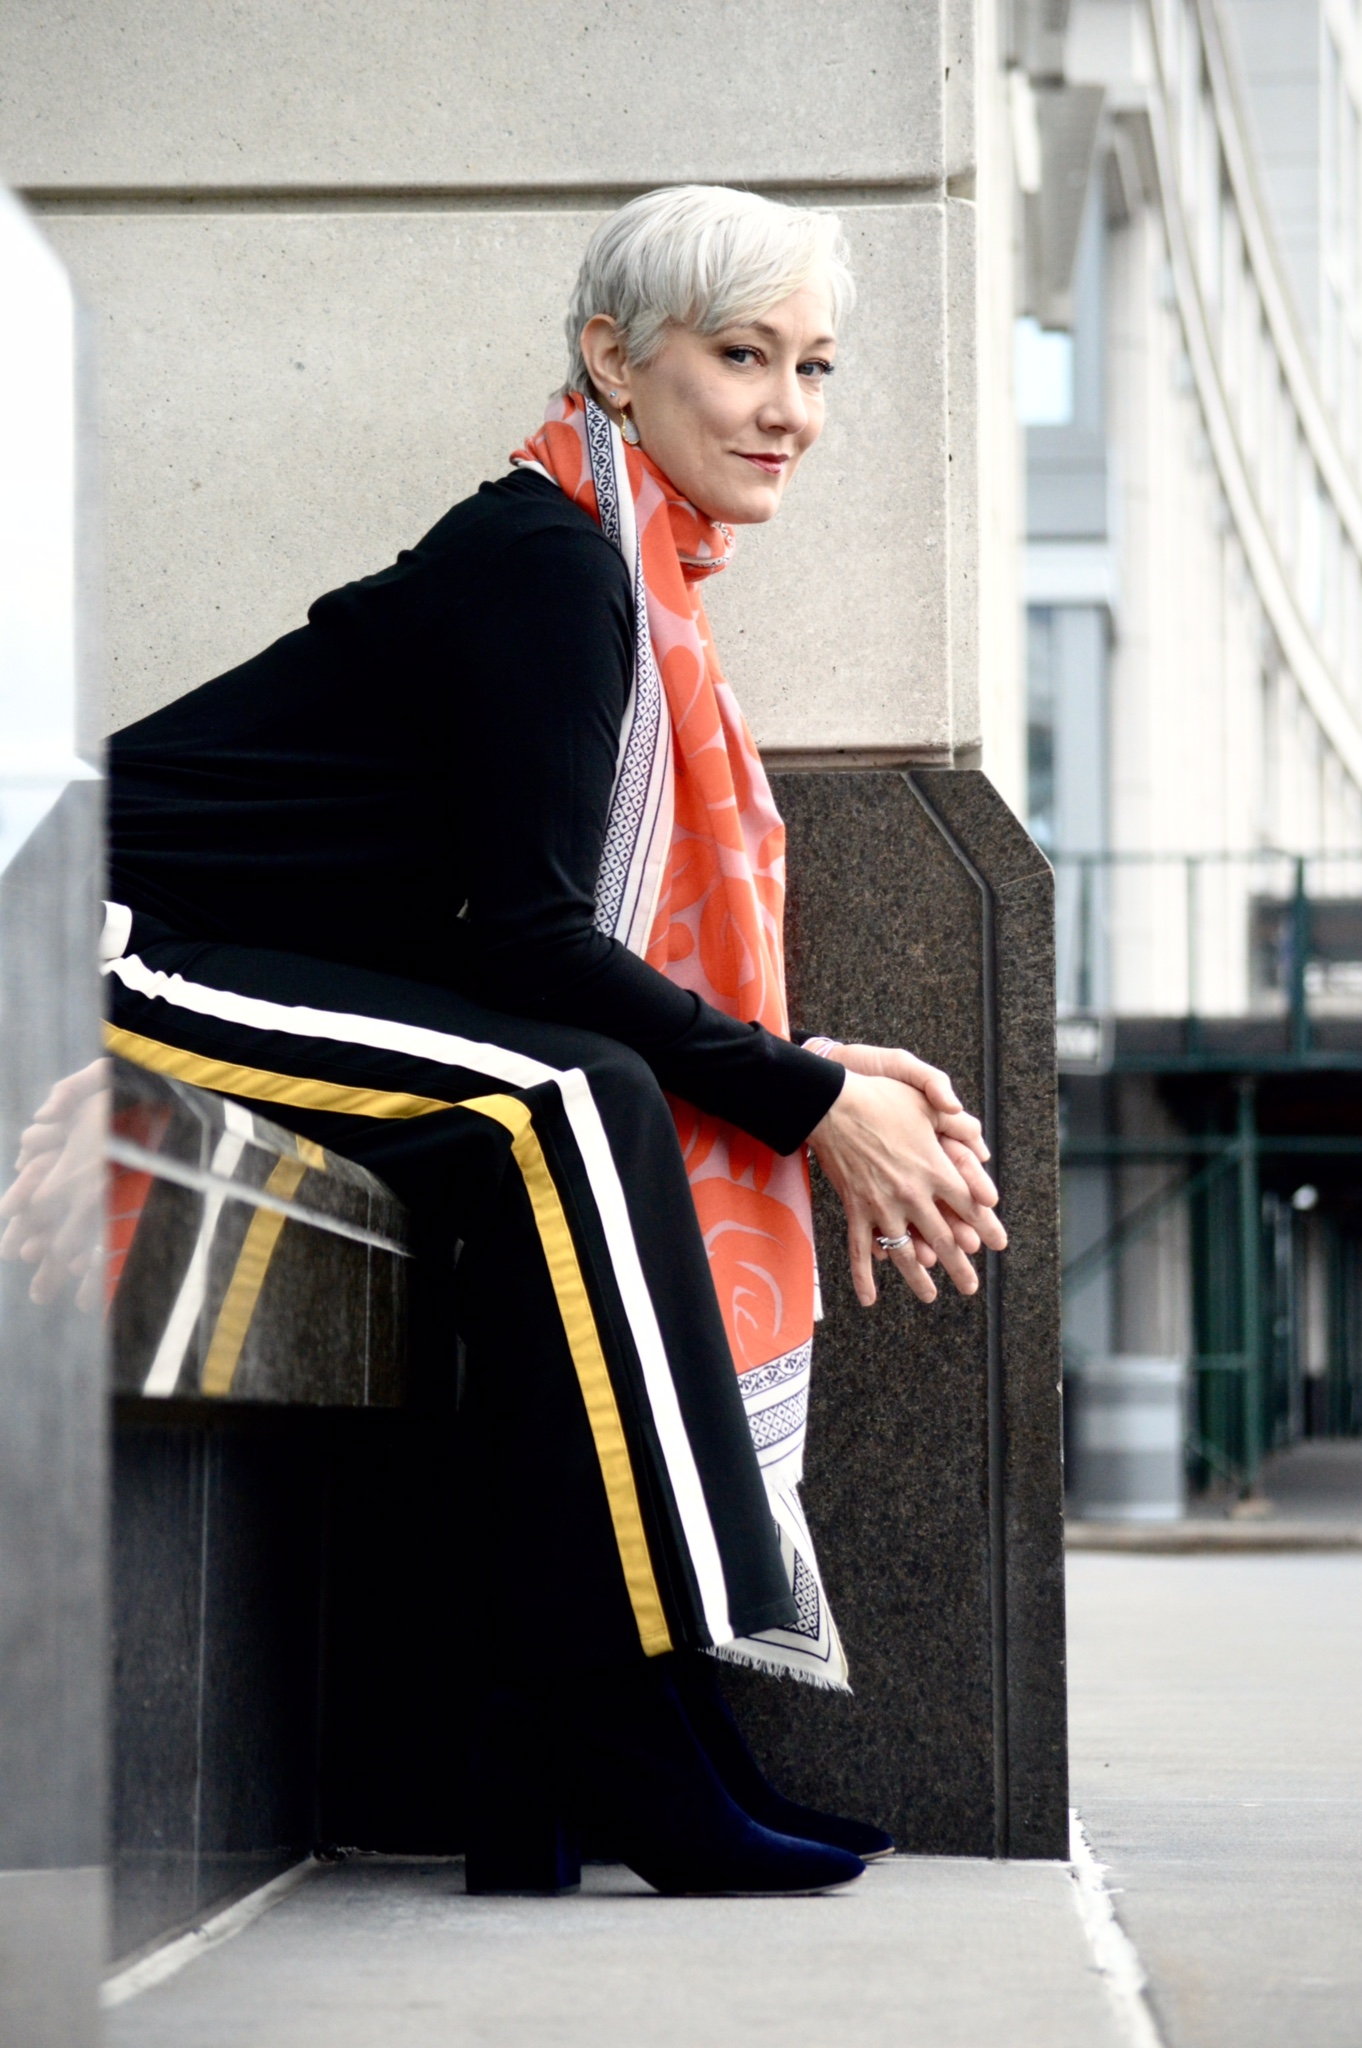 Deborah wingert - Deborah Wingert is currently Head Faculty at Manhattan Youth Ballet, as well as on faculty at Juilliard. She teaches company class for New York City Ballet, Alvin Ailey American Dance Theater, and Dance Theater of Harlem, as well as other companies.